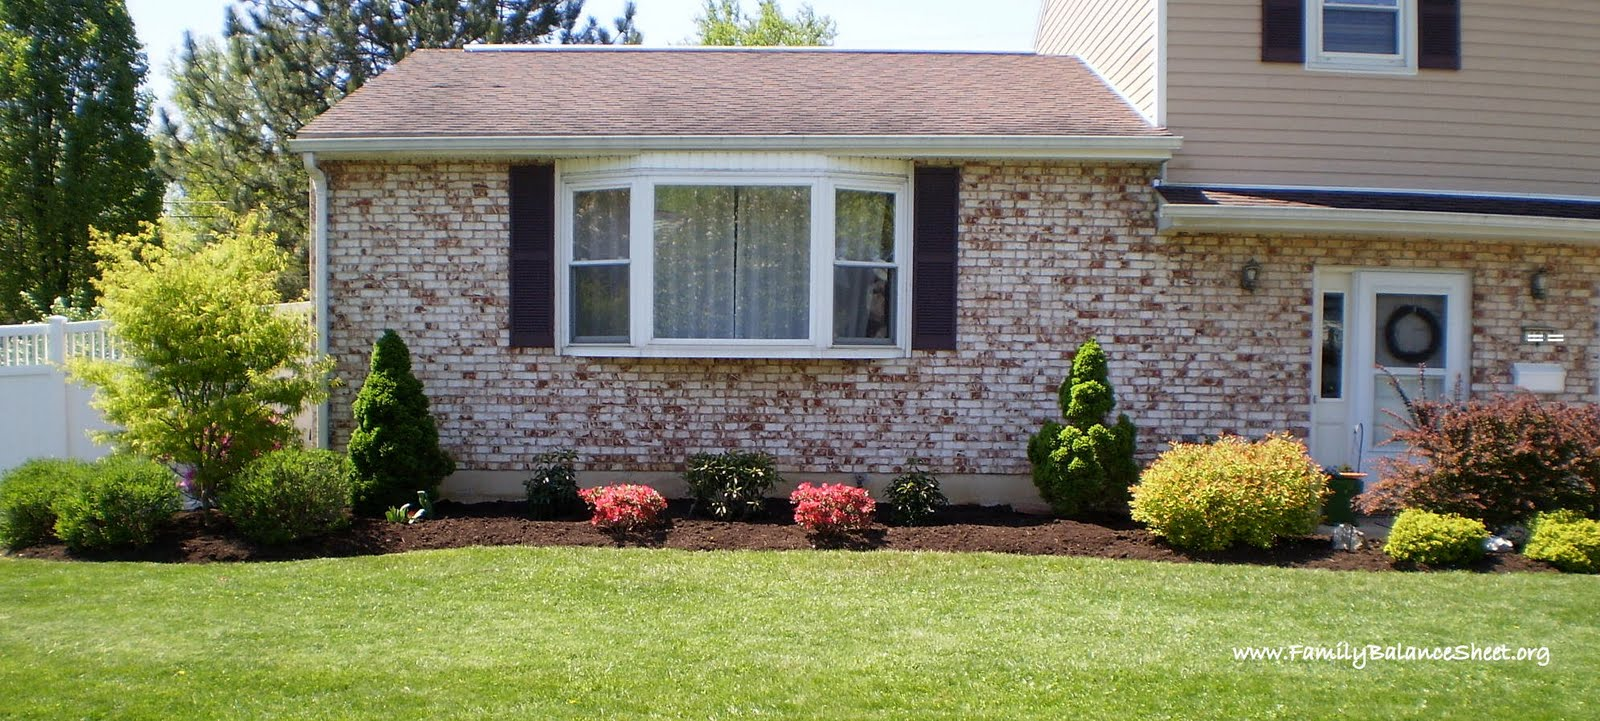 15 tips to help you design your front yard save money too for Front yard landscaping